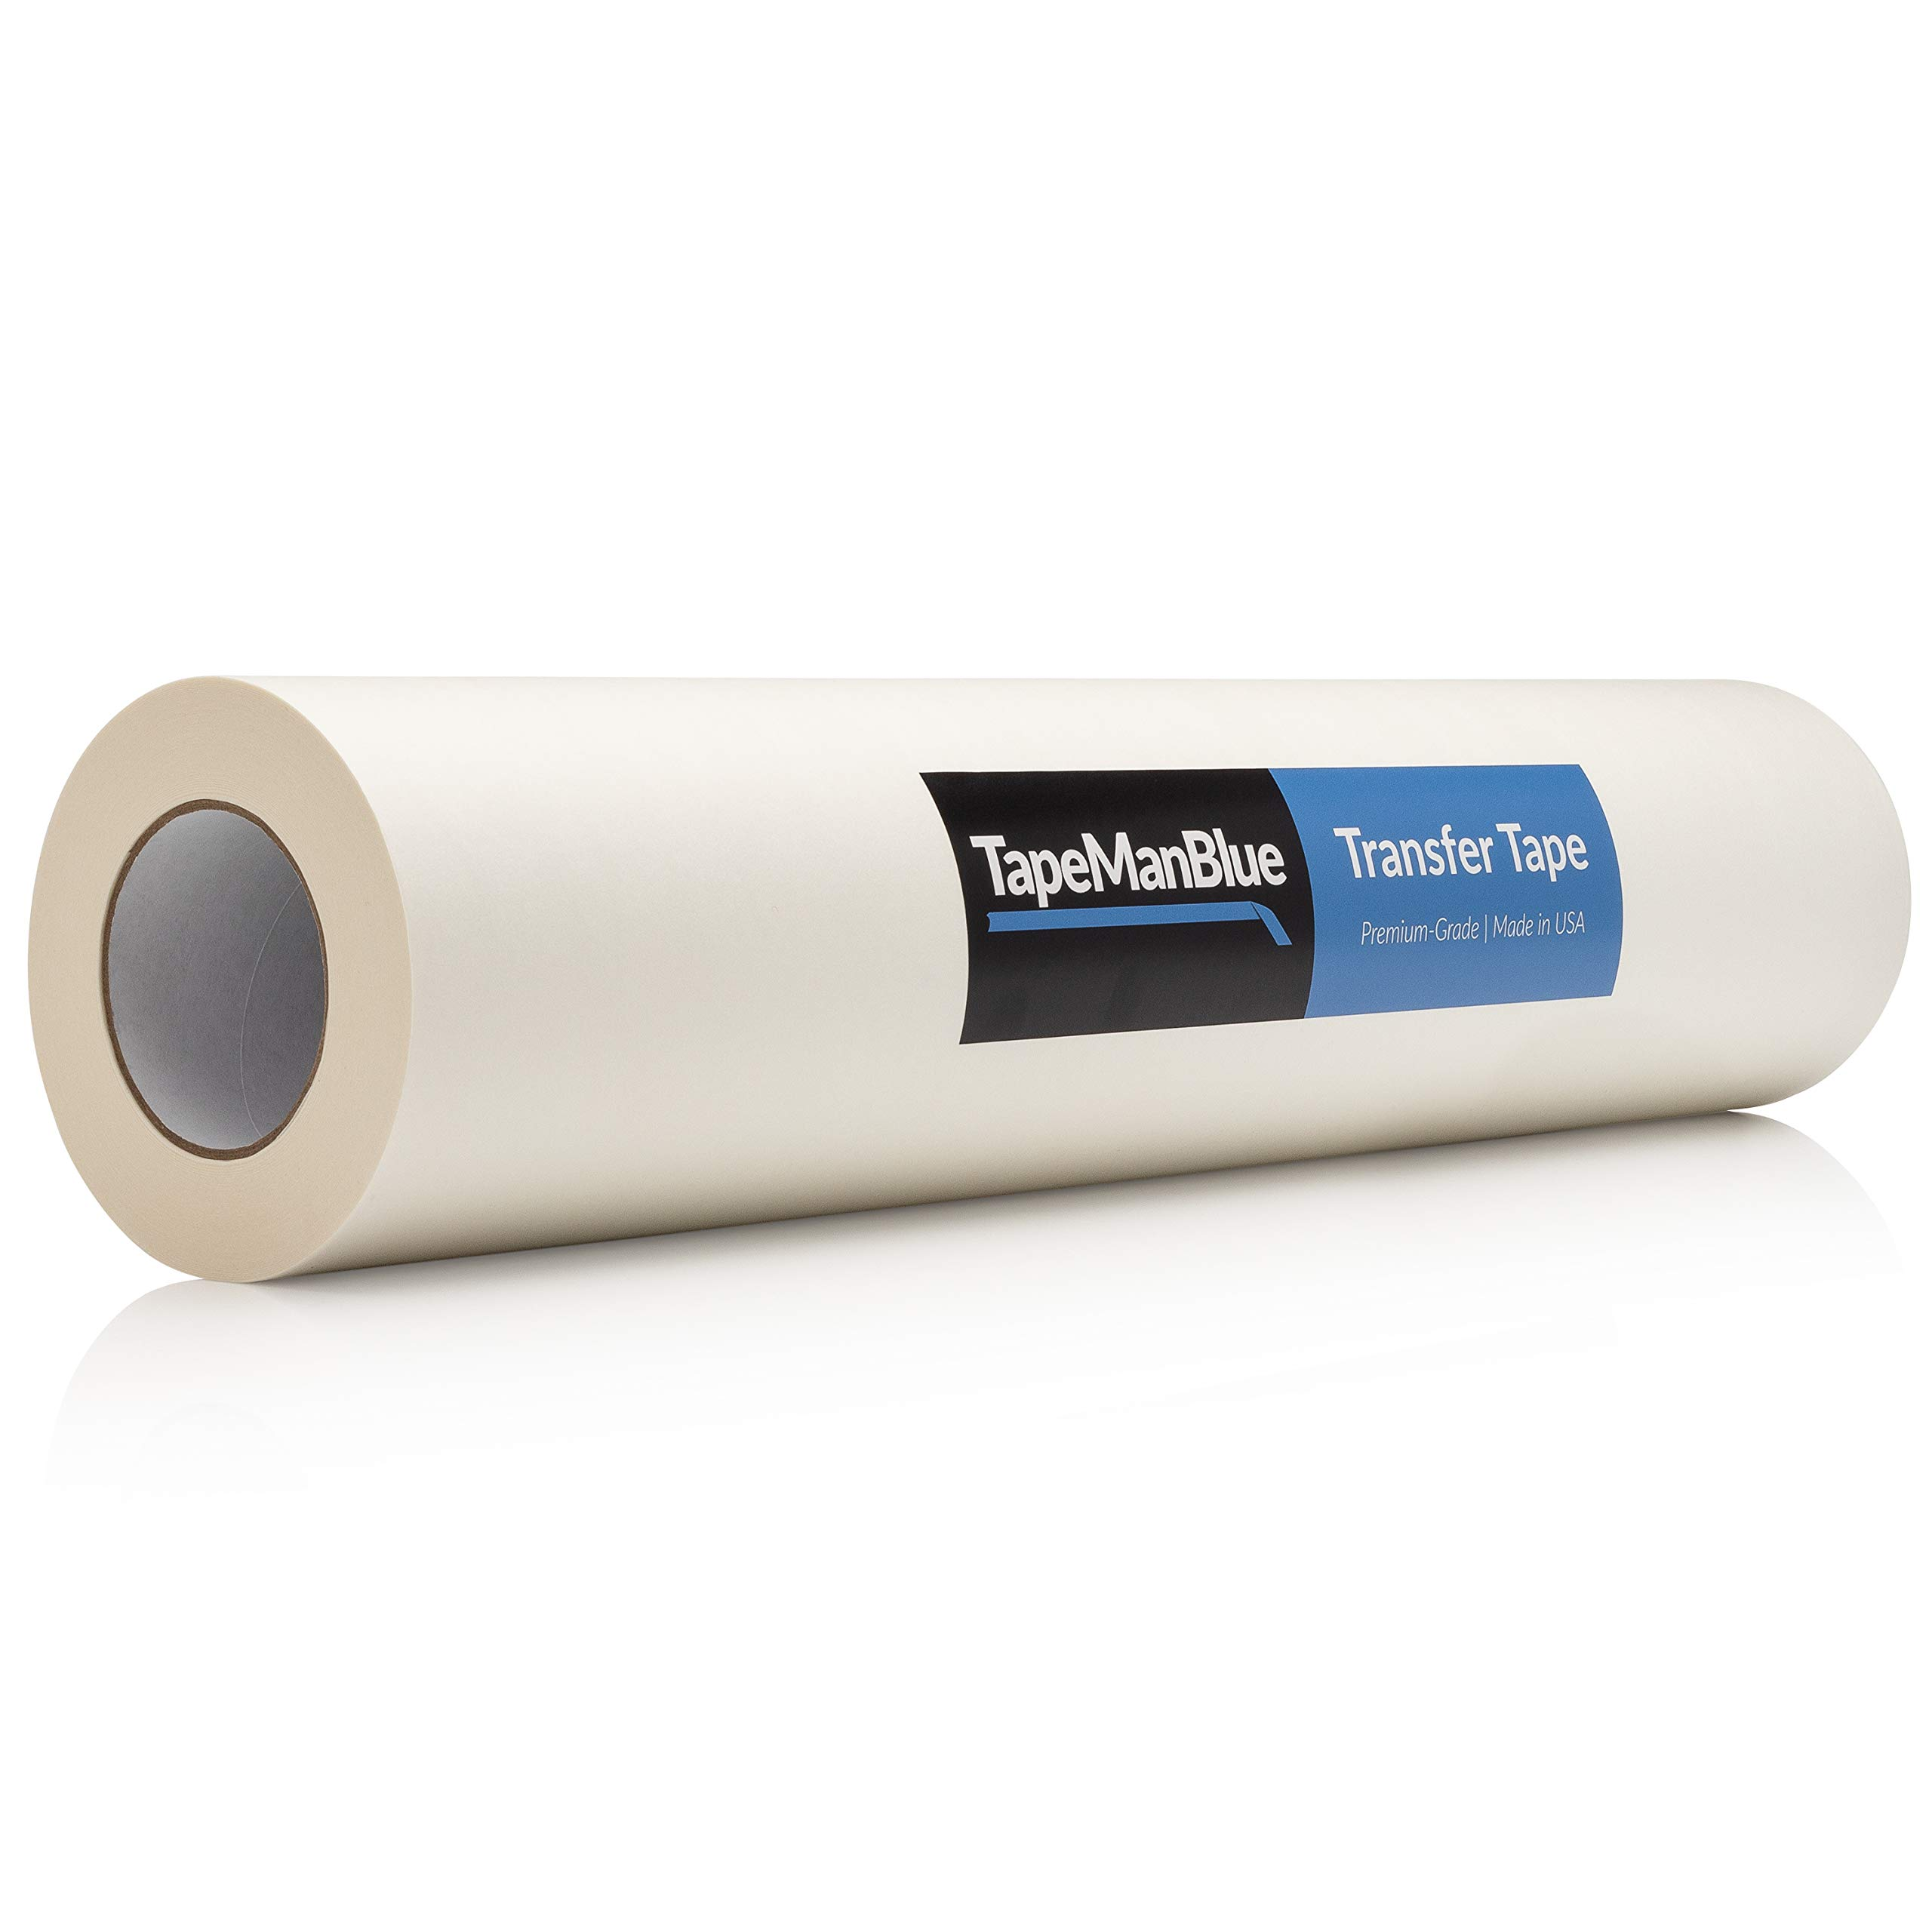 24 inch x 100 Yard Roll of Vinyl Transfer Tape Paper with Layflat Adhesive. Premium-Grade Application Tape for Vinyl Graphics and Sign Making. Made in The USA by TapeManBlue